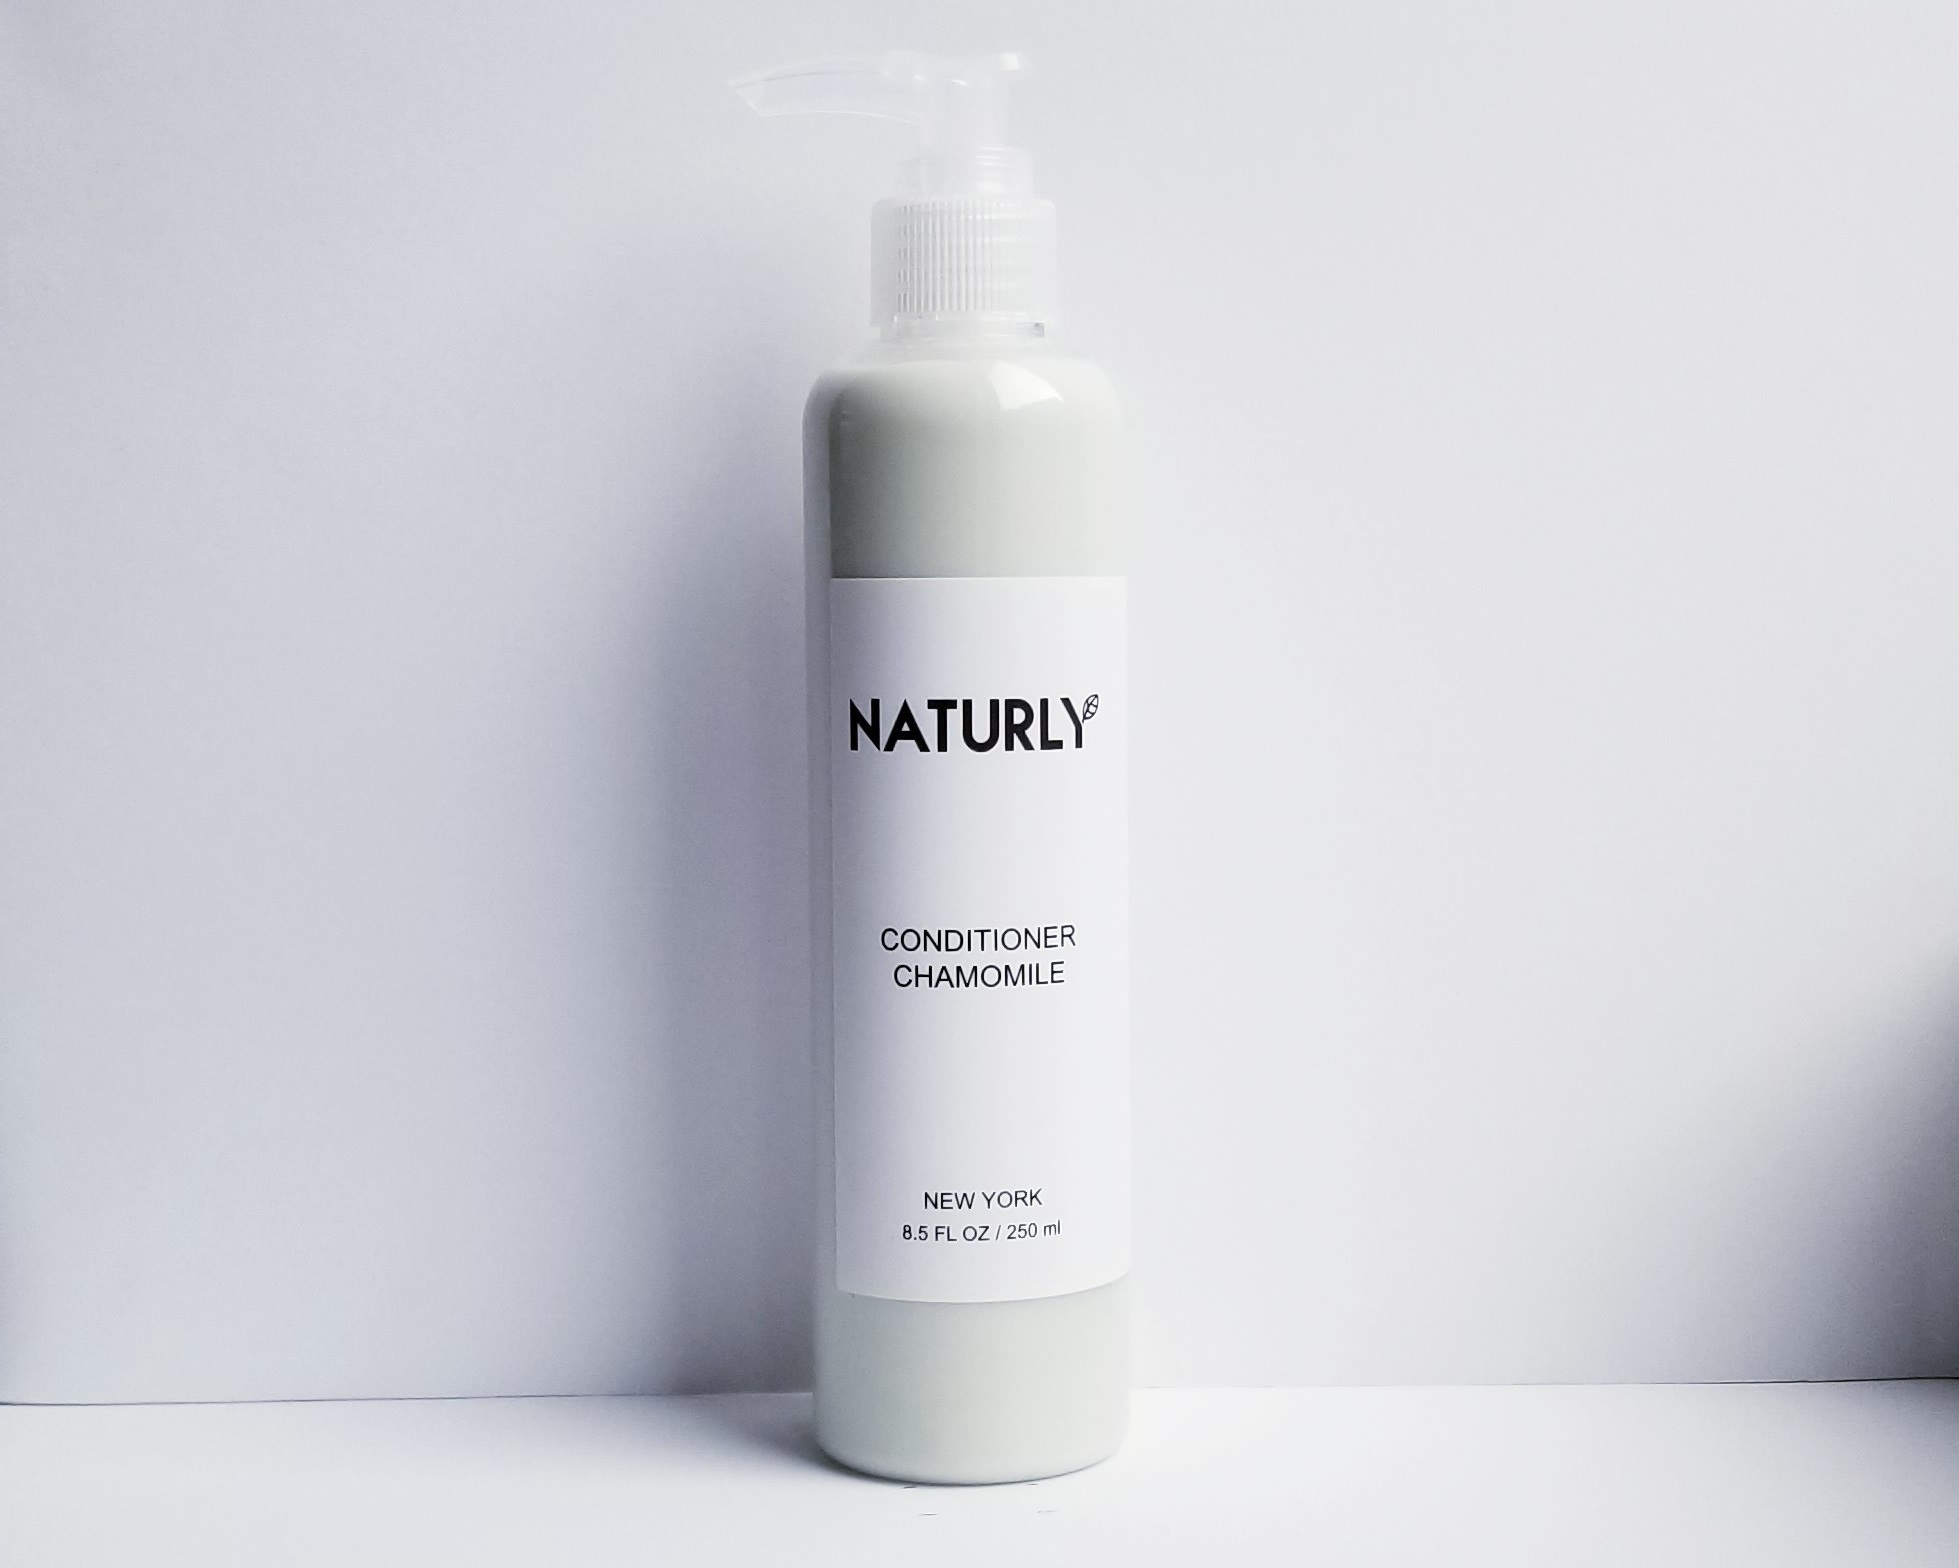 Conditioner with coconut emollient, chamomile & lavendar oils, anti-oxidant chlorophyl extract - $28